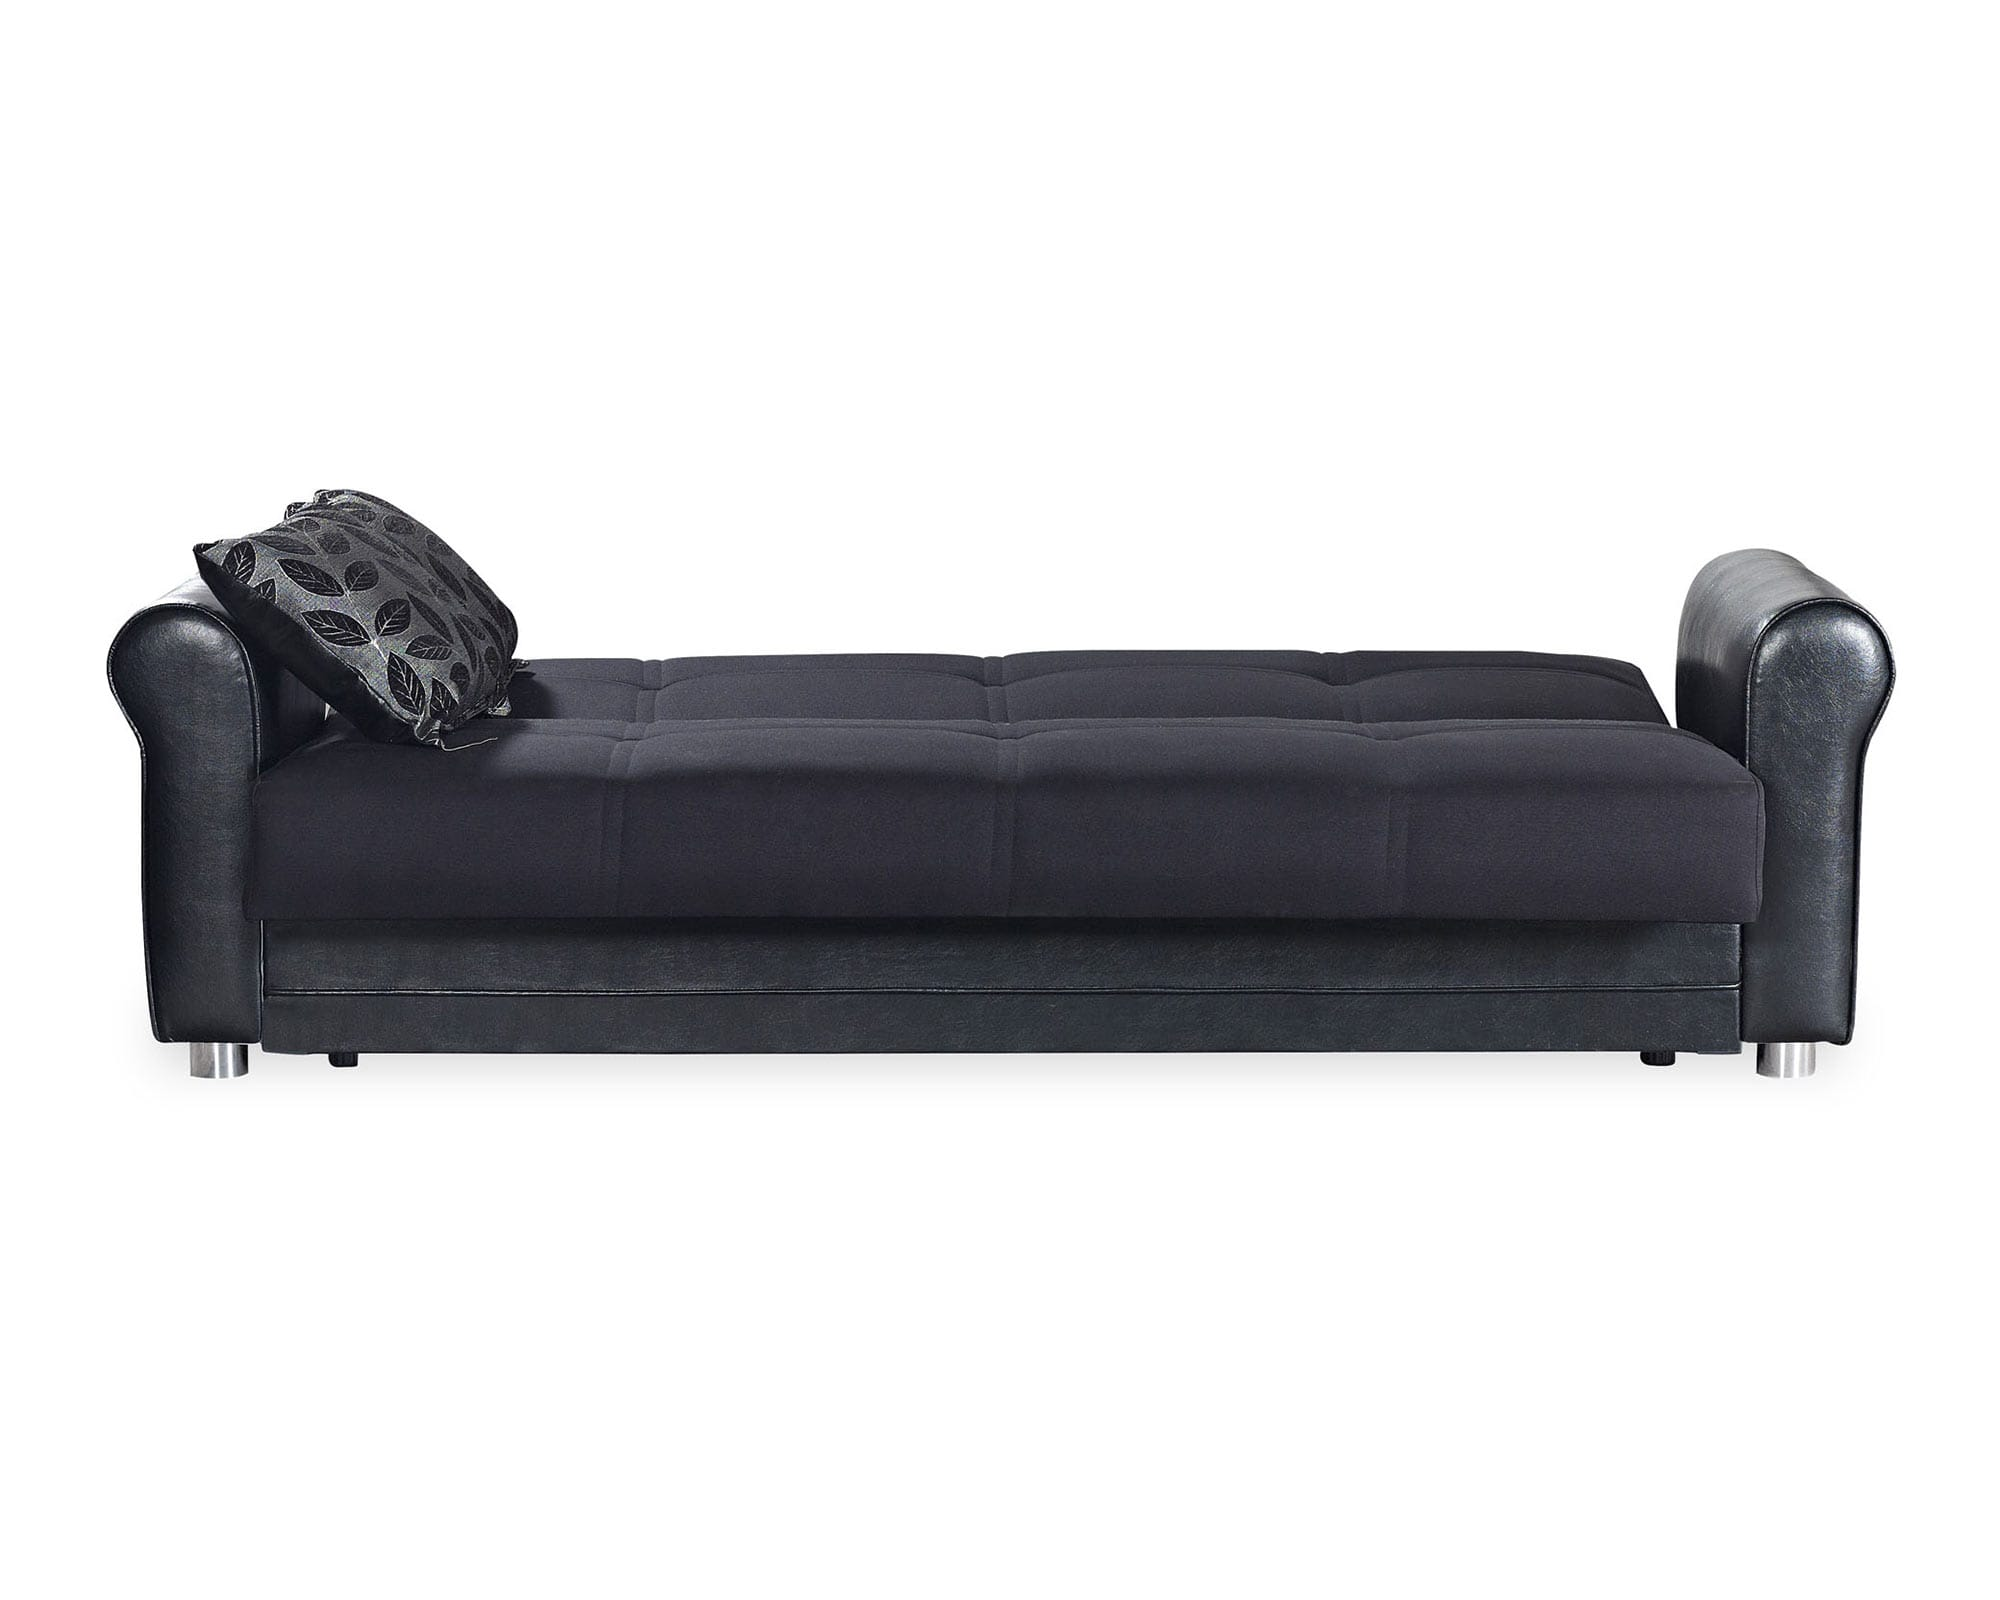 Avalon Plus Prusa Black Convertible Sofa by Casamode